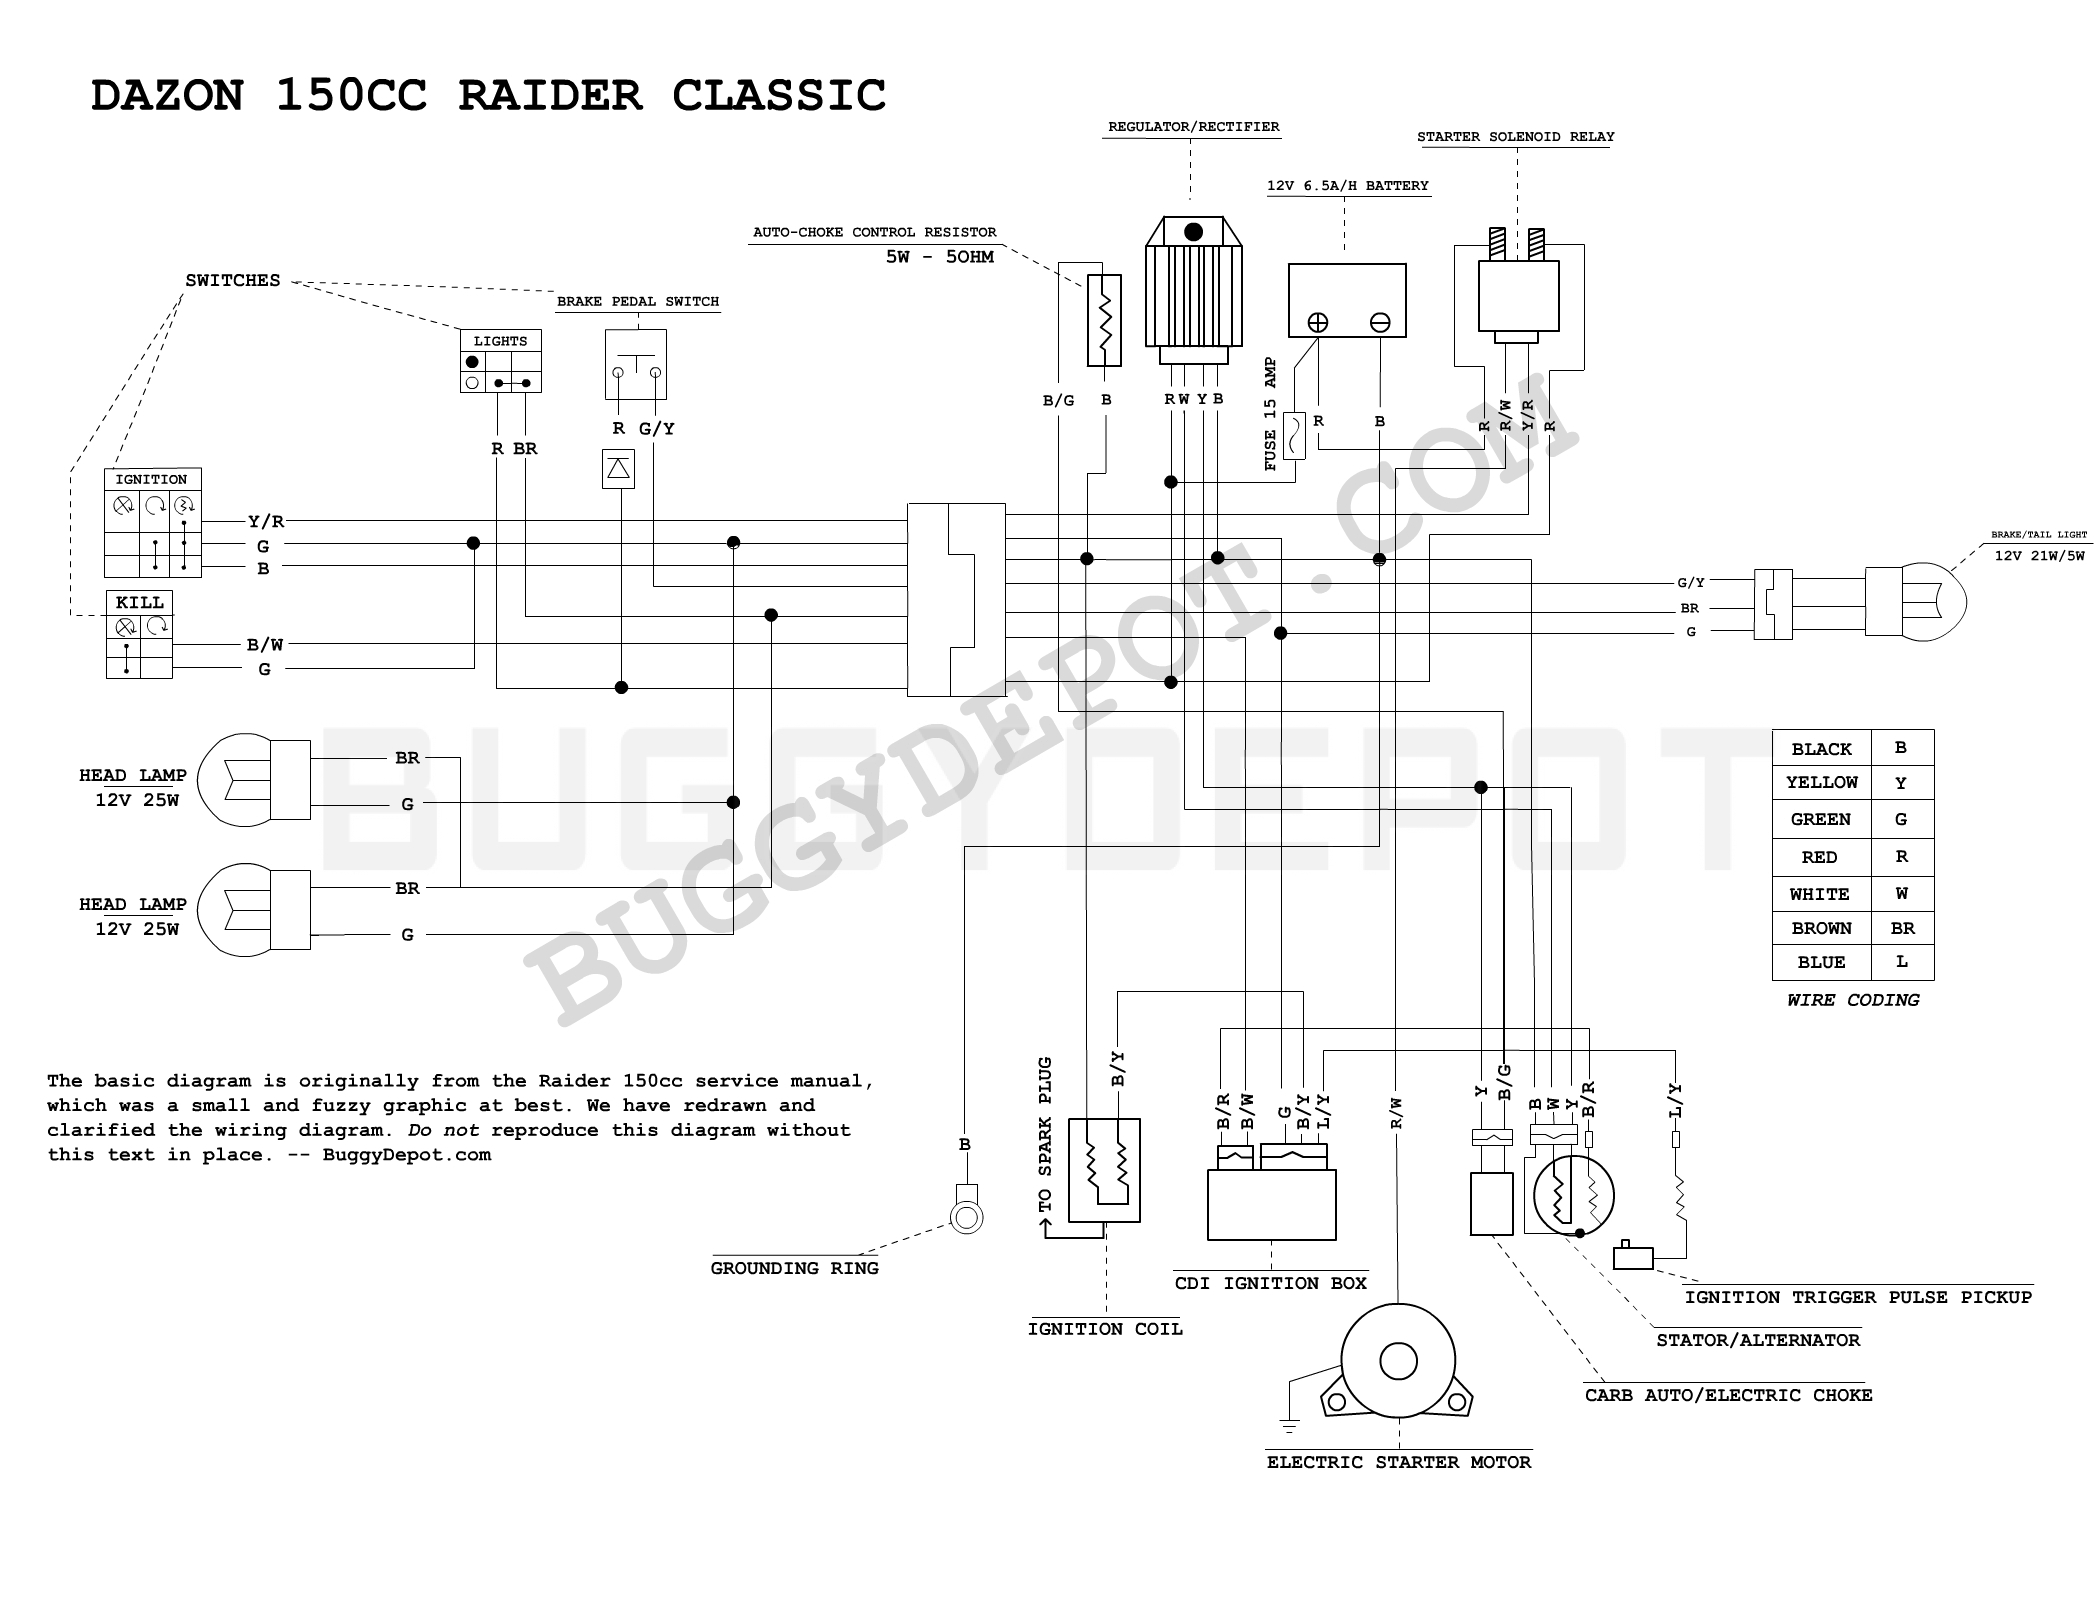 article_33_1278205207 gy6 150cc ignition troubleshooting guide no spark? buggy depot 150cc gy6 wiring diagram at reclaimingppi.co